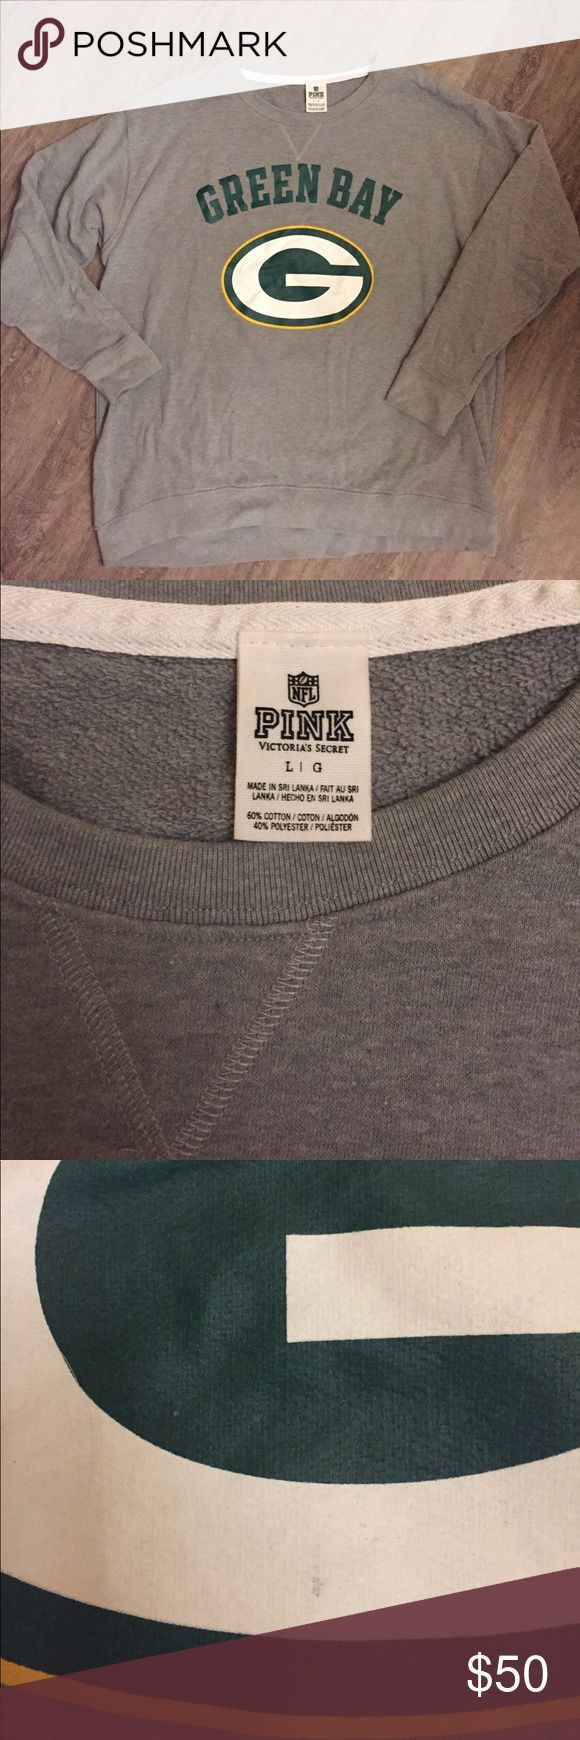 VS PINK NFL Green Bay Packers sweatshirt RARE Victoria's Secret PINK NFL Collection Green Bay Packers sweatshirt. Size large- runs on the larger side. Extremely soft and comfortable. No pilling and looks like it's never been worn, aside from a small mark on the Packers logo. Hard to find! PINK Victoria's Secret Sweaters Crew & Scoop Necks